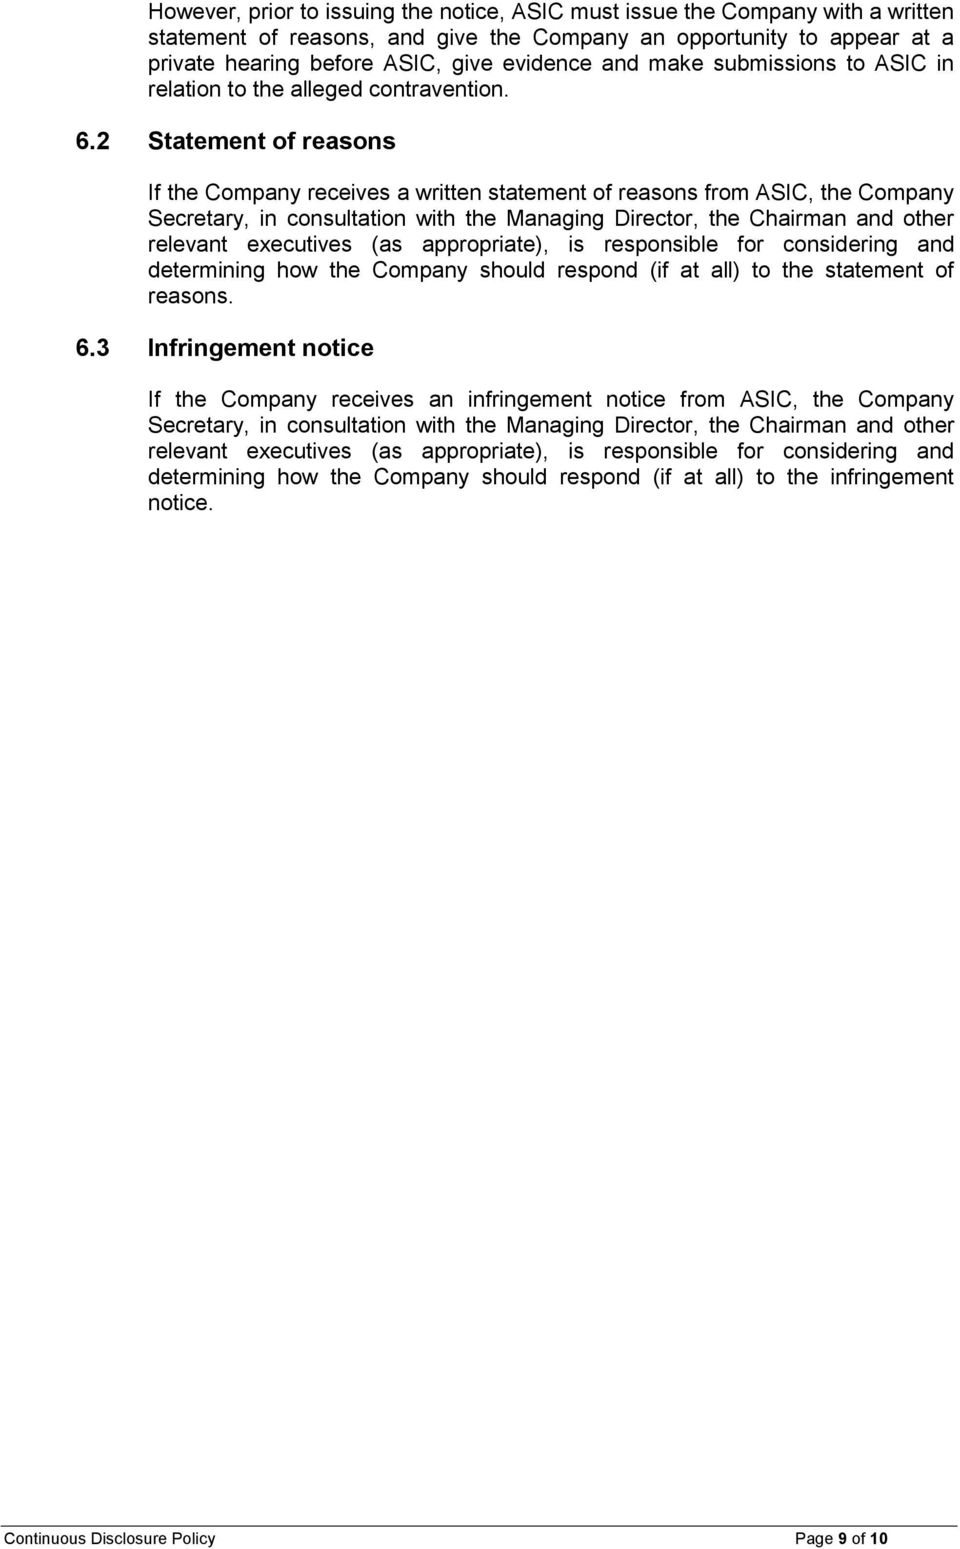 2 Statement of reasons If the Company receives a written statement of reasons from ASIC, the Company Secretary, in consultation with the Managing Director, the Chairman and other relevant executives